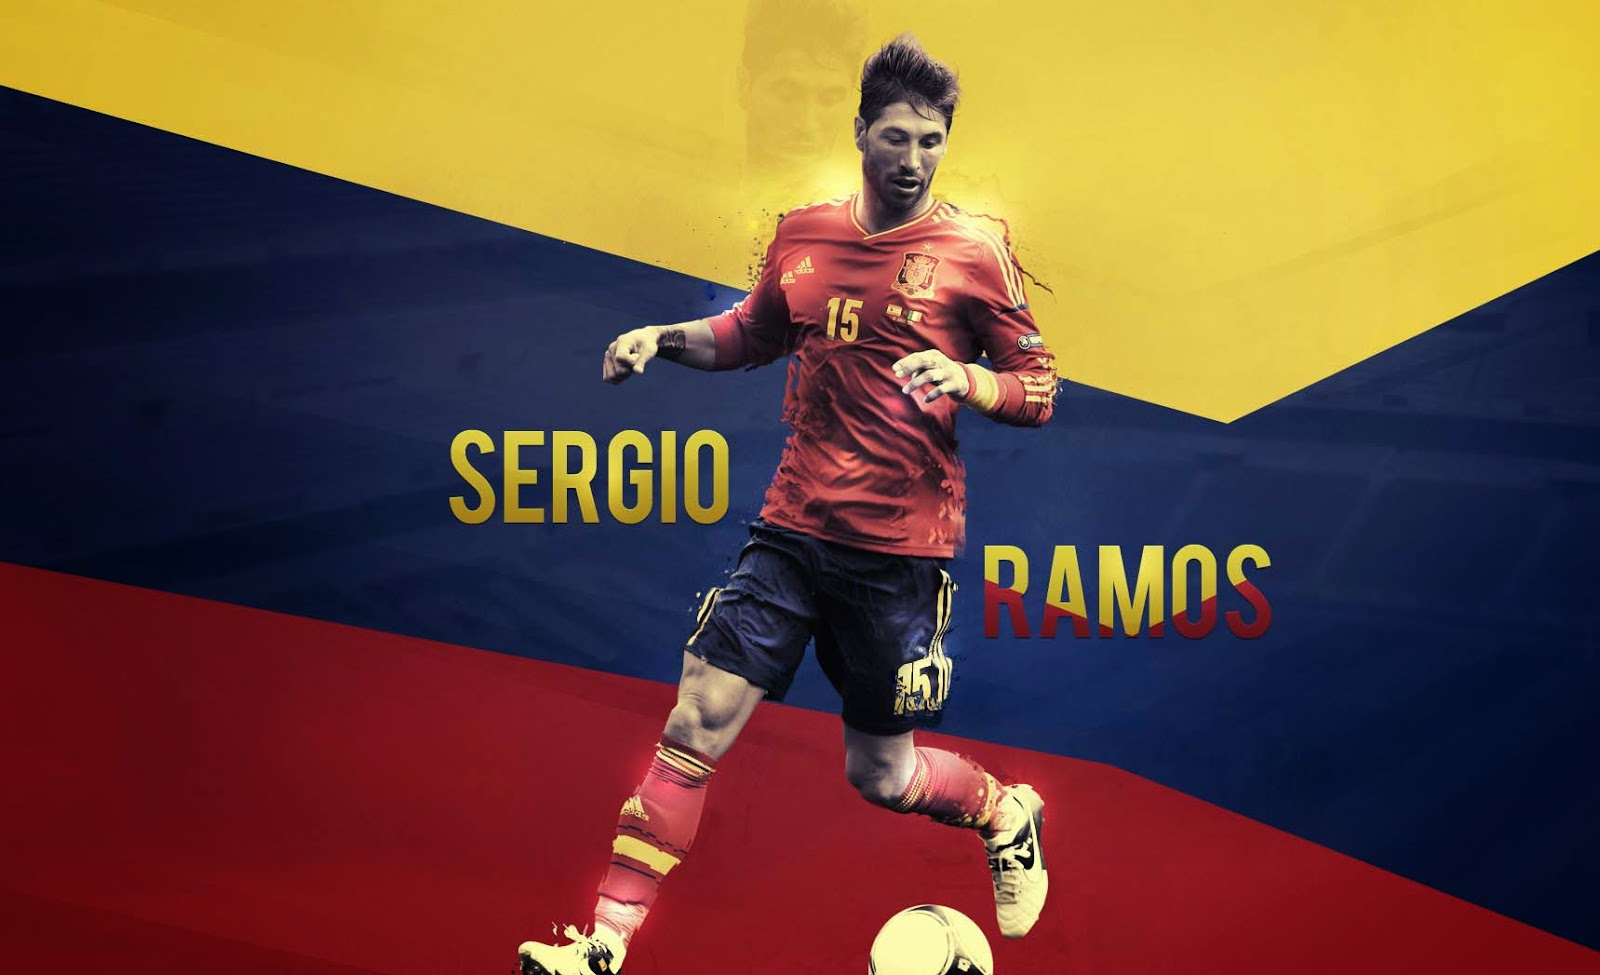 sergio ramos hd images - photo #25